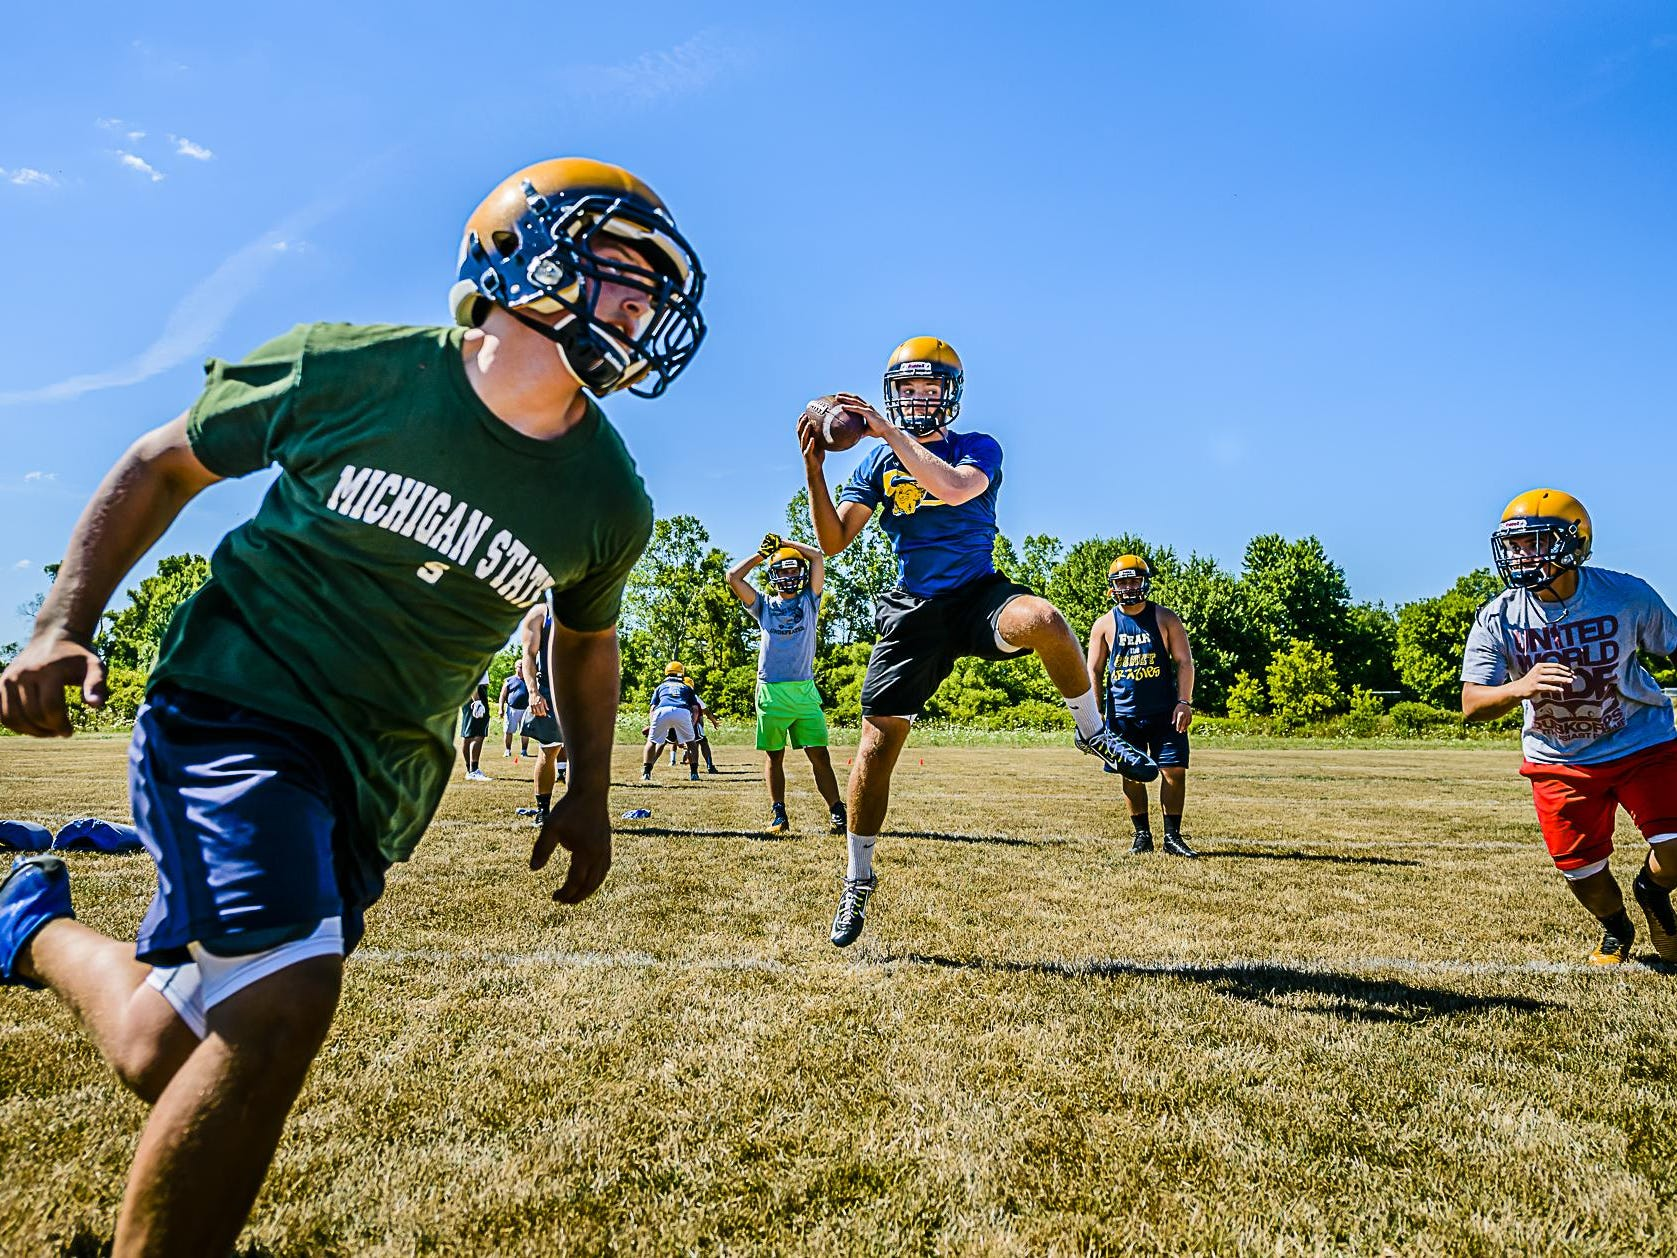 Grand Ledge quarterback Nolan Byrd ,center, recovers a high snap as he and his teammates run a play during the first practice of their fall camp Monday August 8, 2016 in Grand Ledge. KEVIN W. FOWLER PHOTO